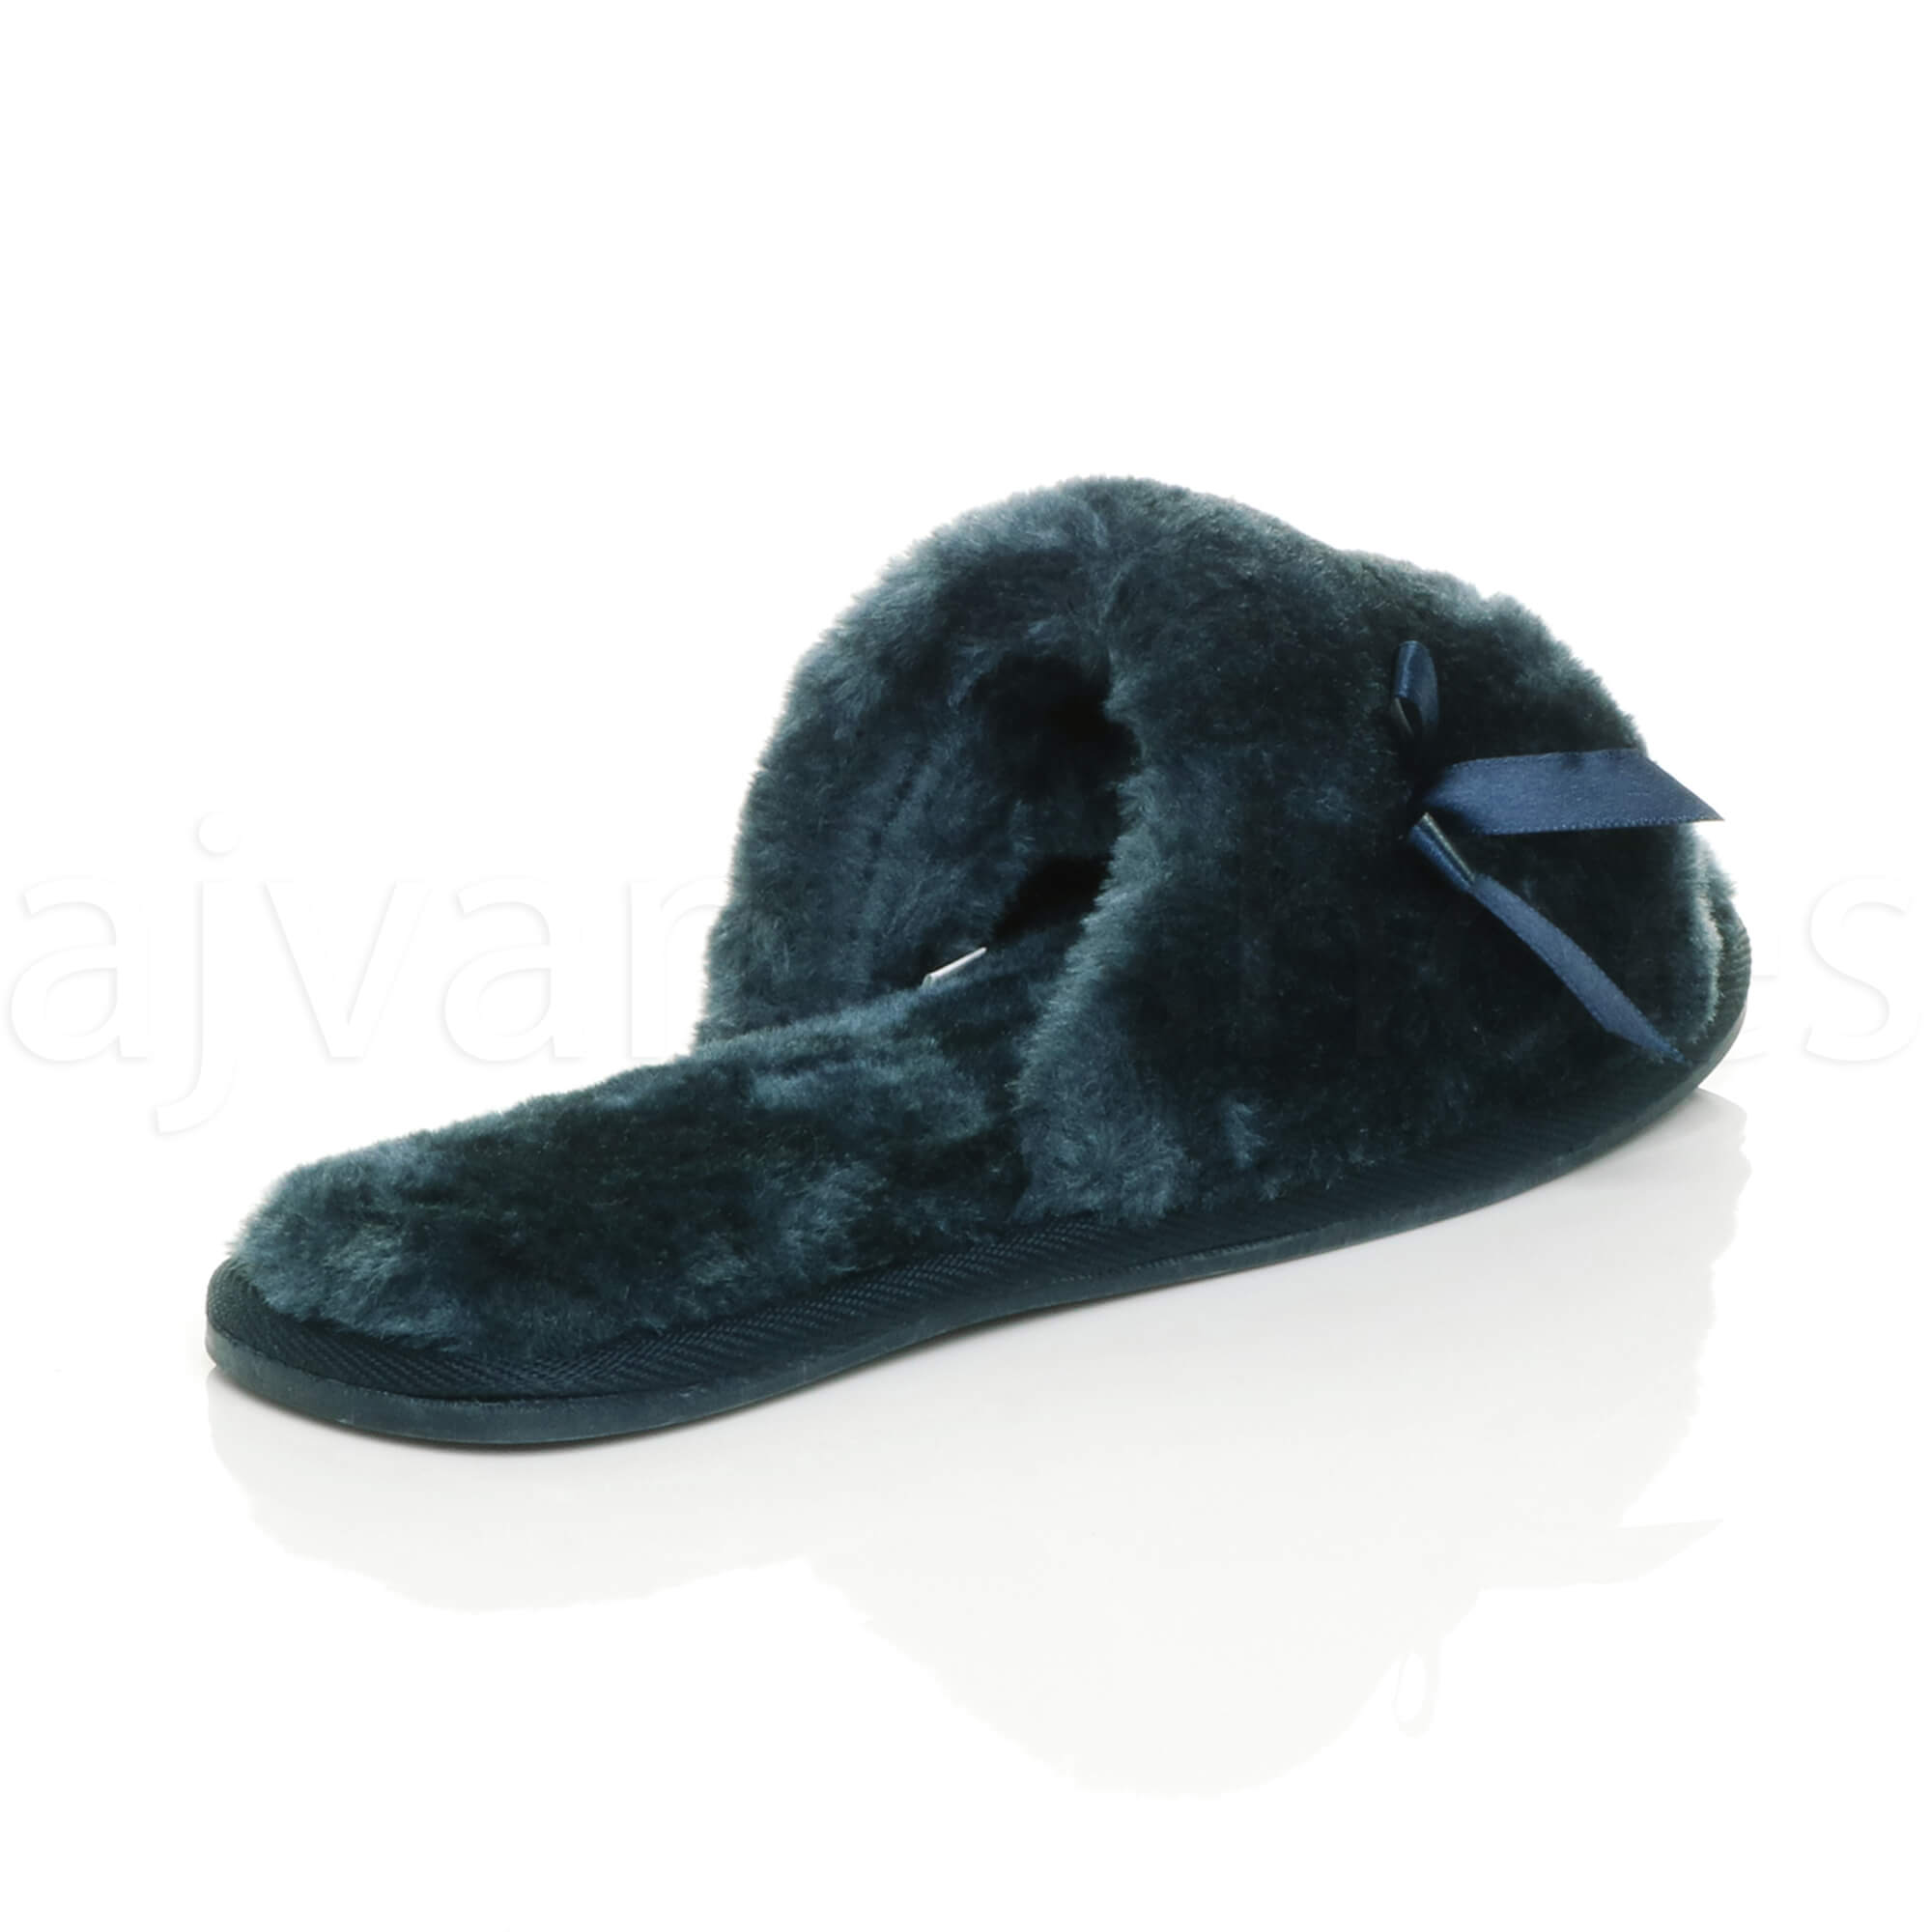 WOMENS-LADIES-FLAT-PEEP-TOE-BOW-LUXURY-COSY-FUR-LINED-SLIP-ON-SLIPPERS-SIZE thumbnail 45